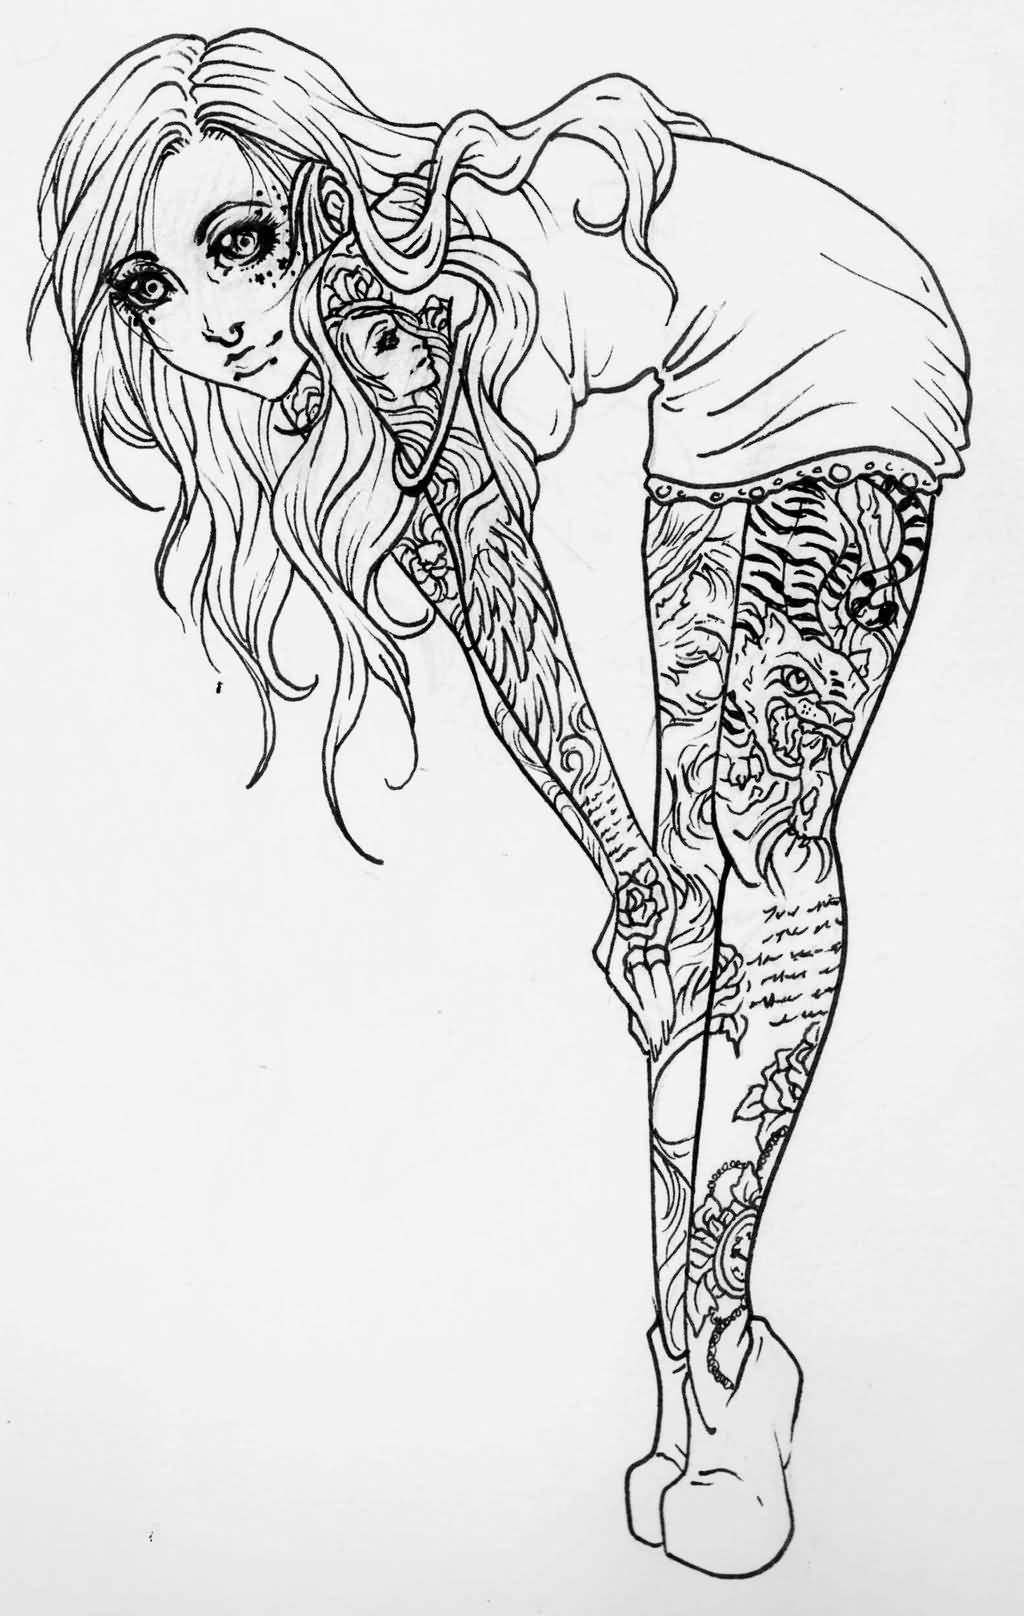 hot girl coloring pages chola girl drawing at getdrawings free download pages girl coloring hot